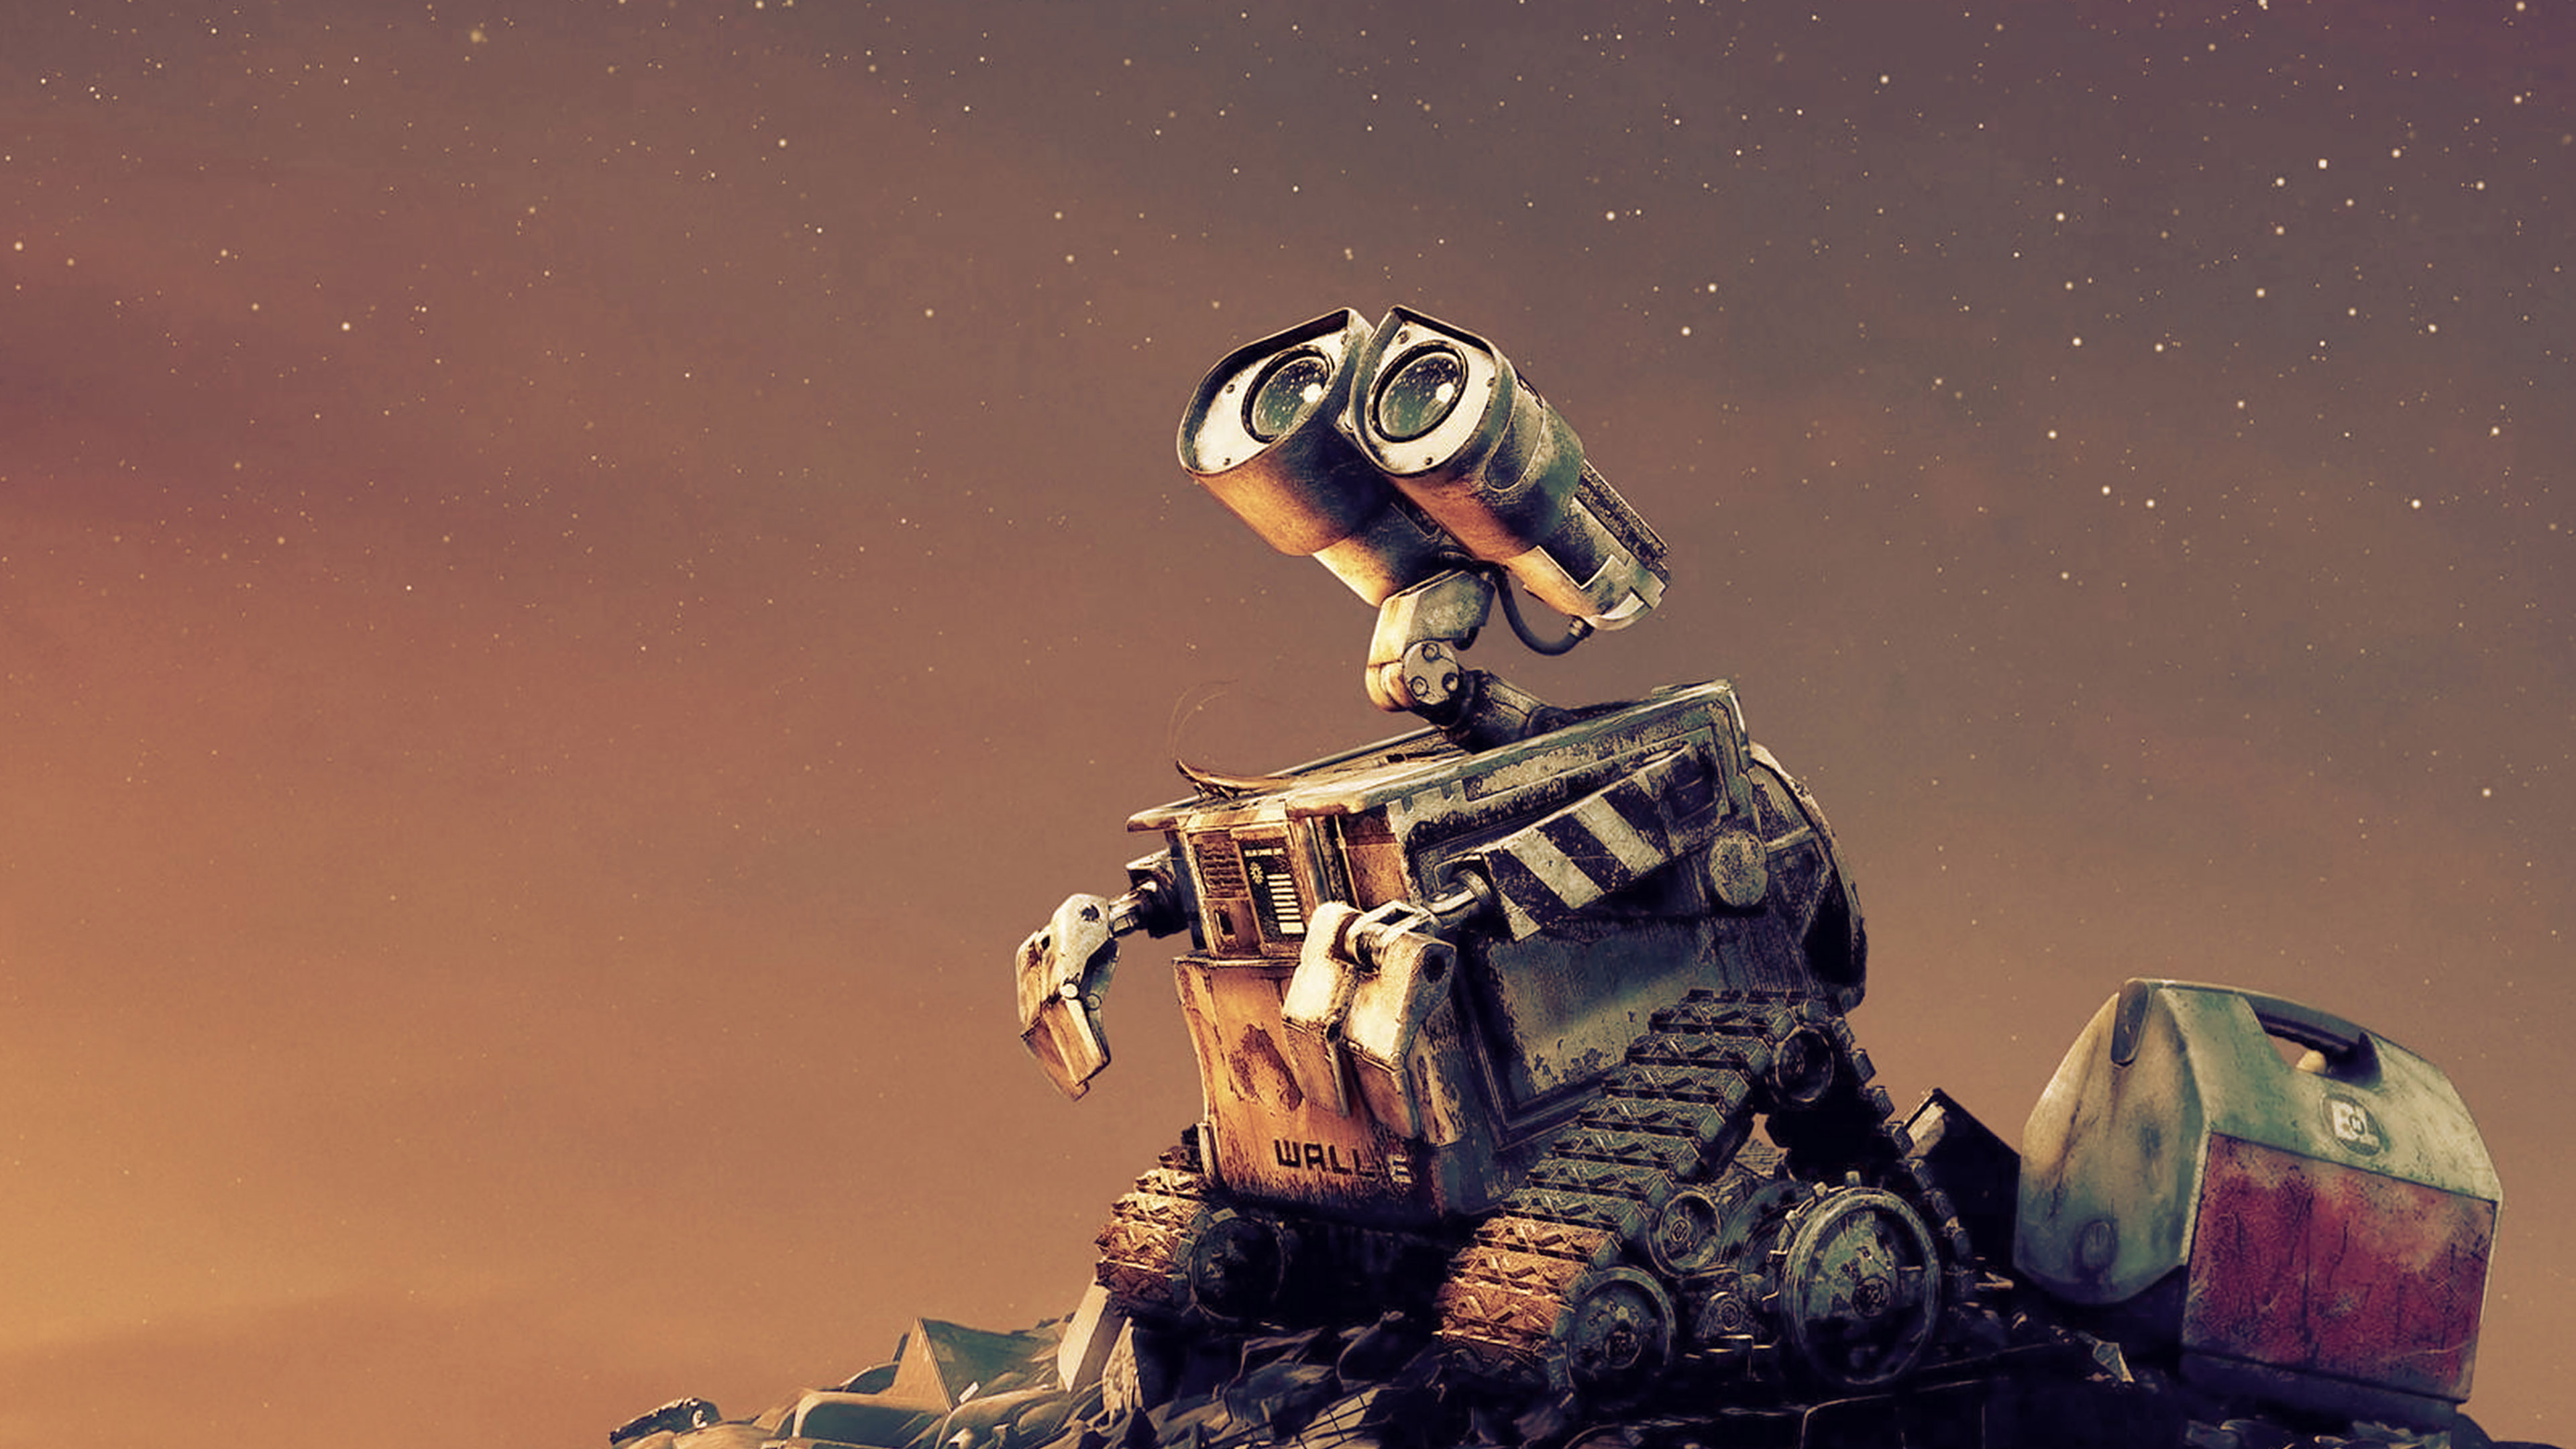 ag67-wall-e-disney-want-go-home-red-art - Papers.co